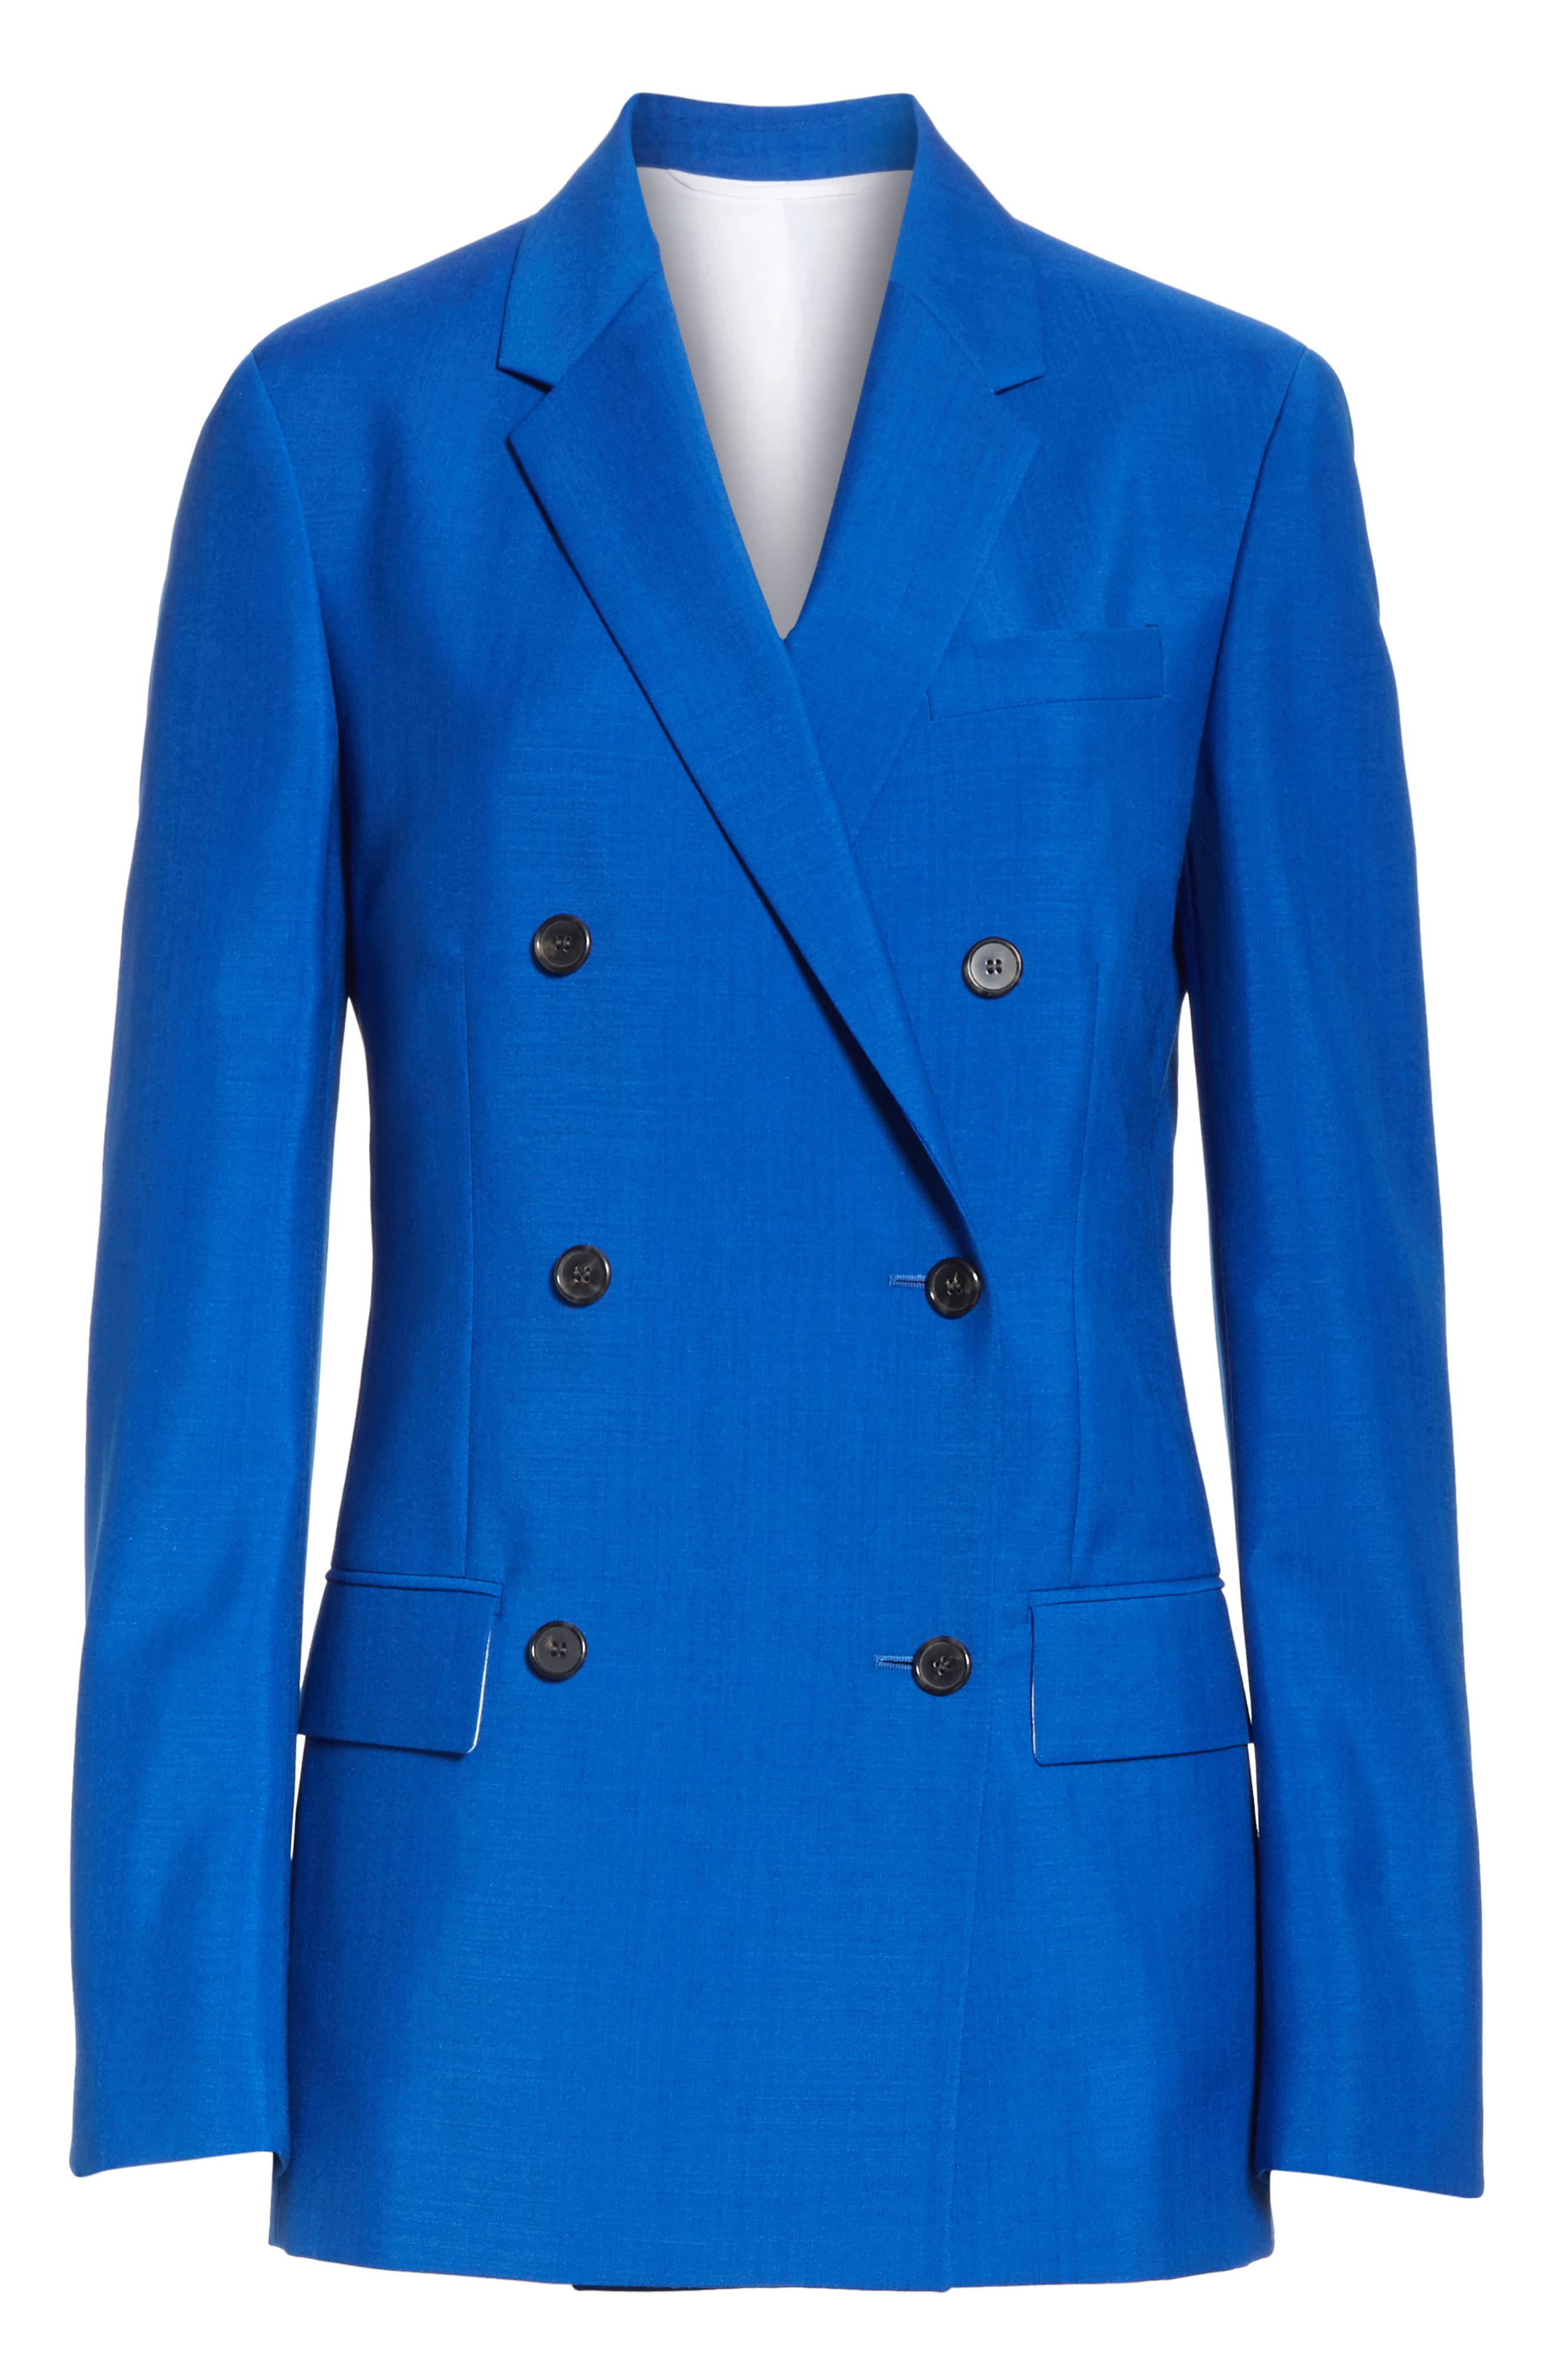 CALVIN KLEIN 205W39NYC, Mohair & Wool Double Breasted Blazer, Alternate thumbnail 5, color, BRIGHT BLUE